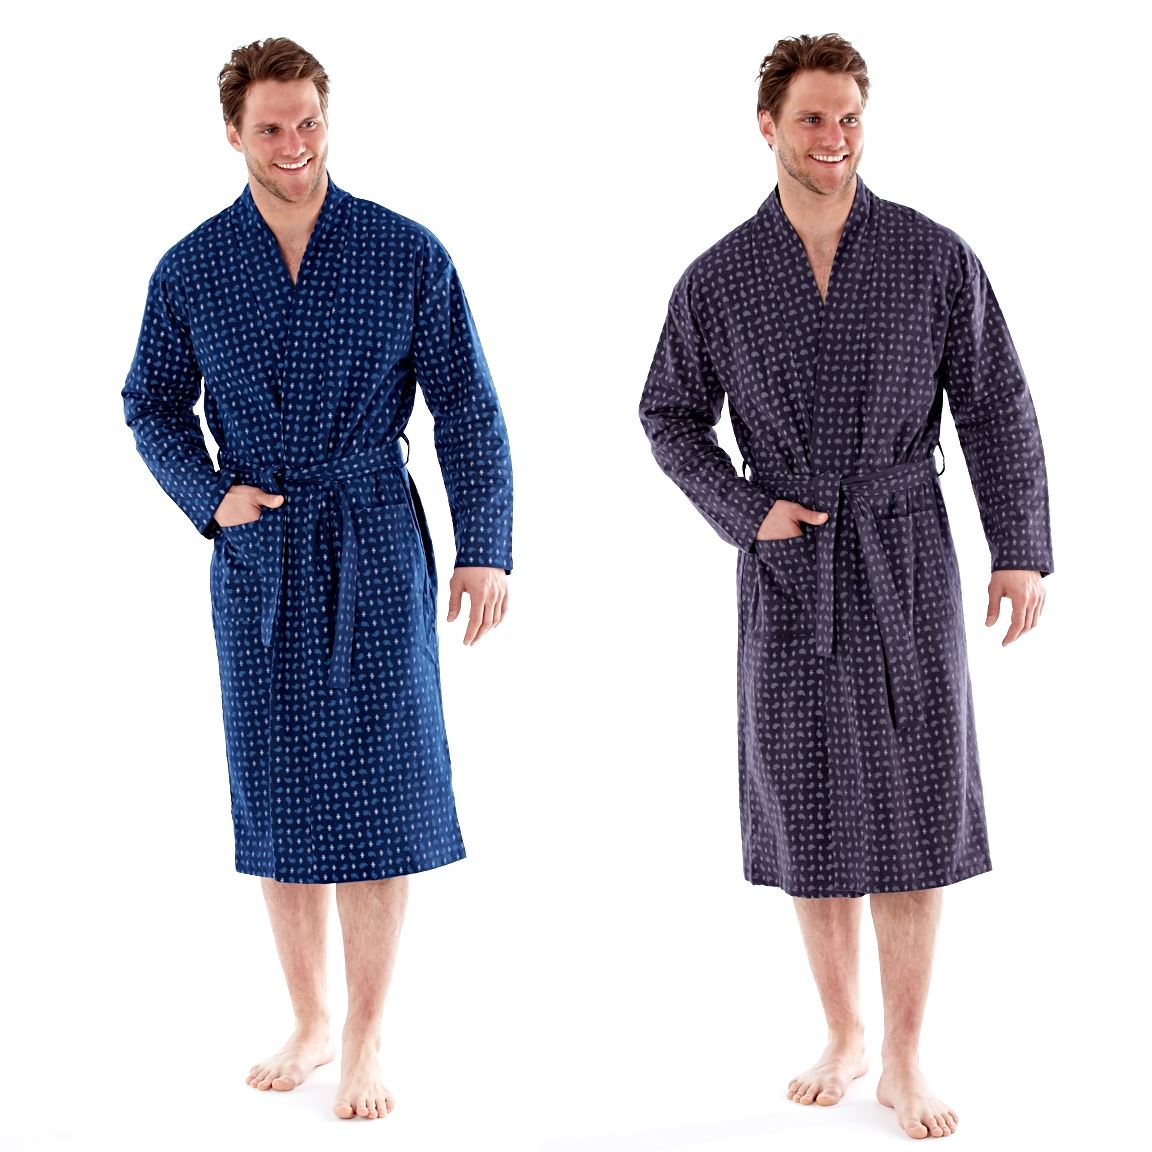 Mens Robe Paisley Lounging Dressing Gown With Belt Brushed Cotton ...